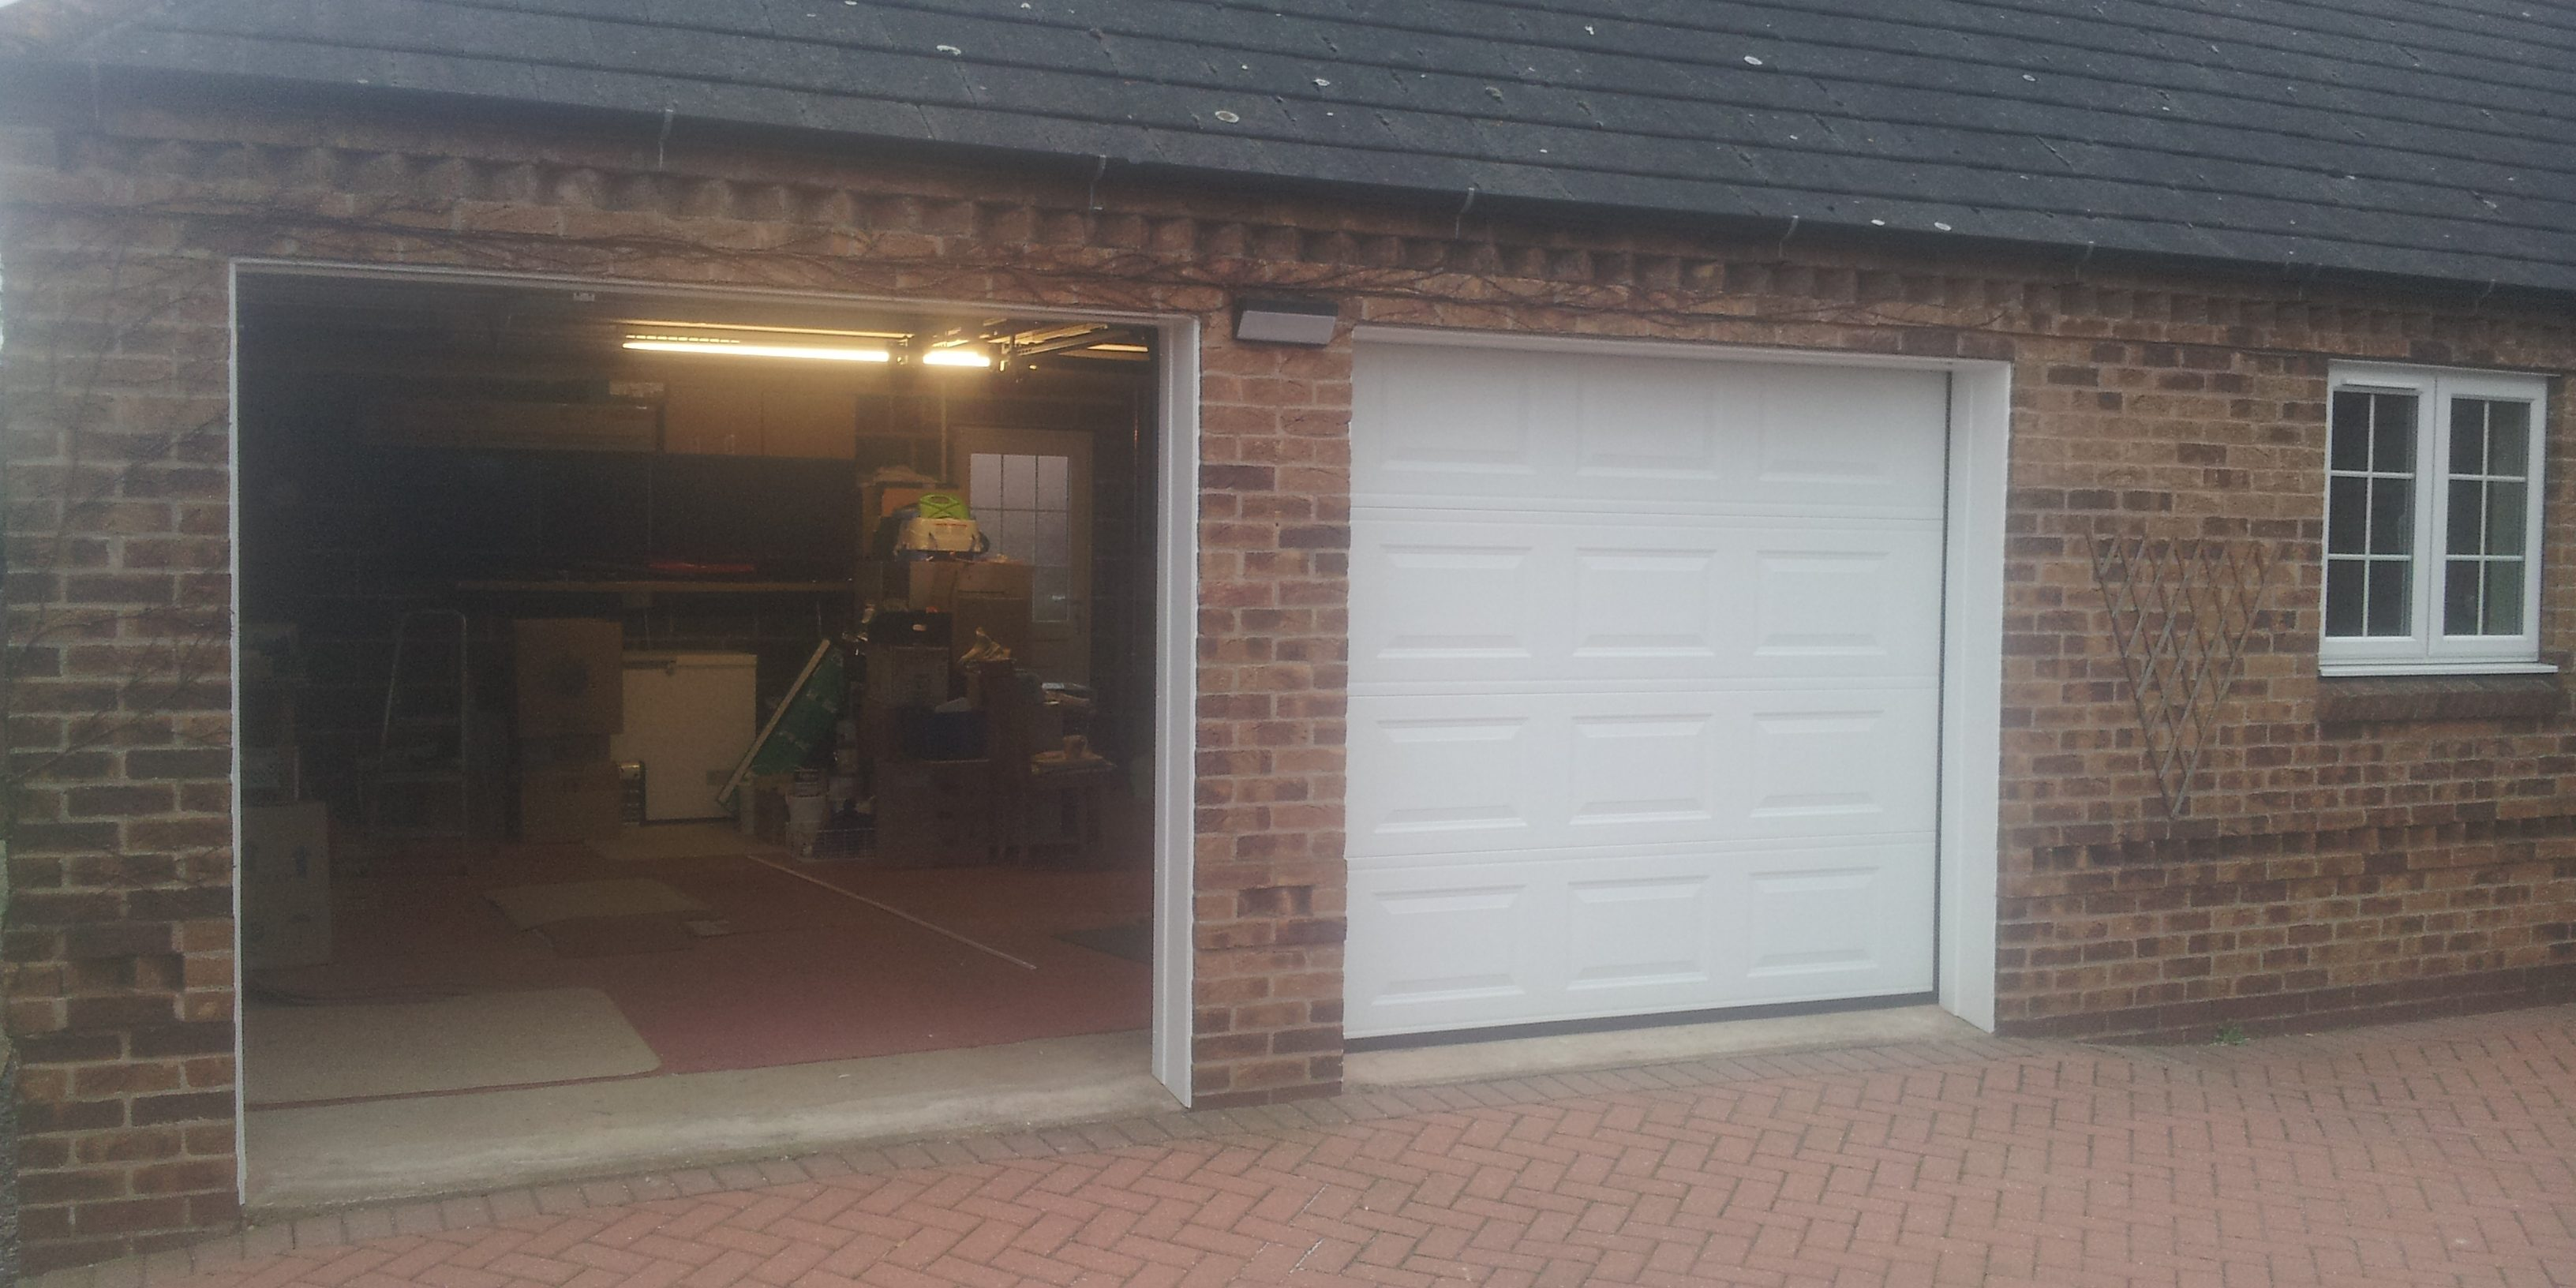 repair doors garage click copper new and image door gallery to photo enlarge denver service